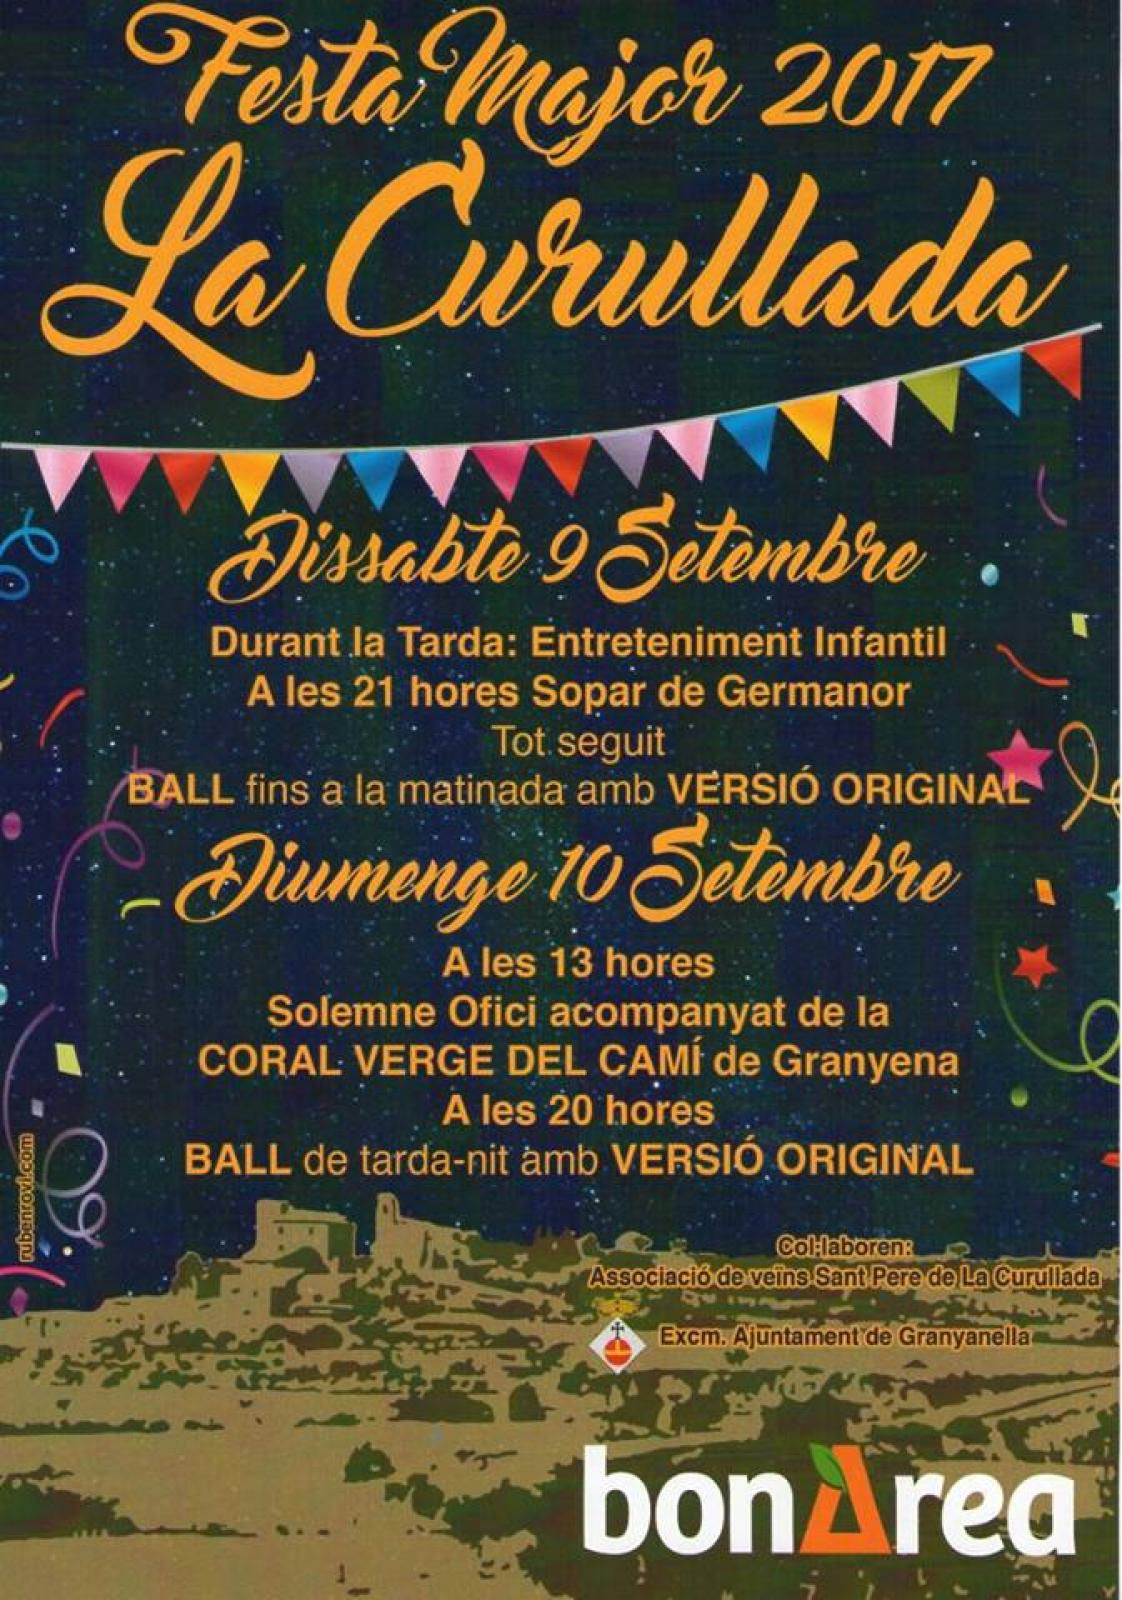 cartell Festa Major de La Curullada 2017